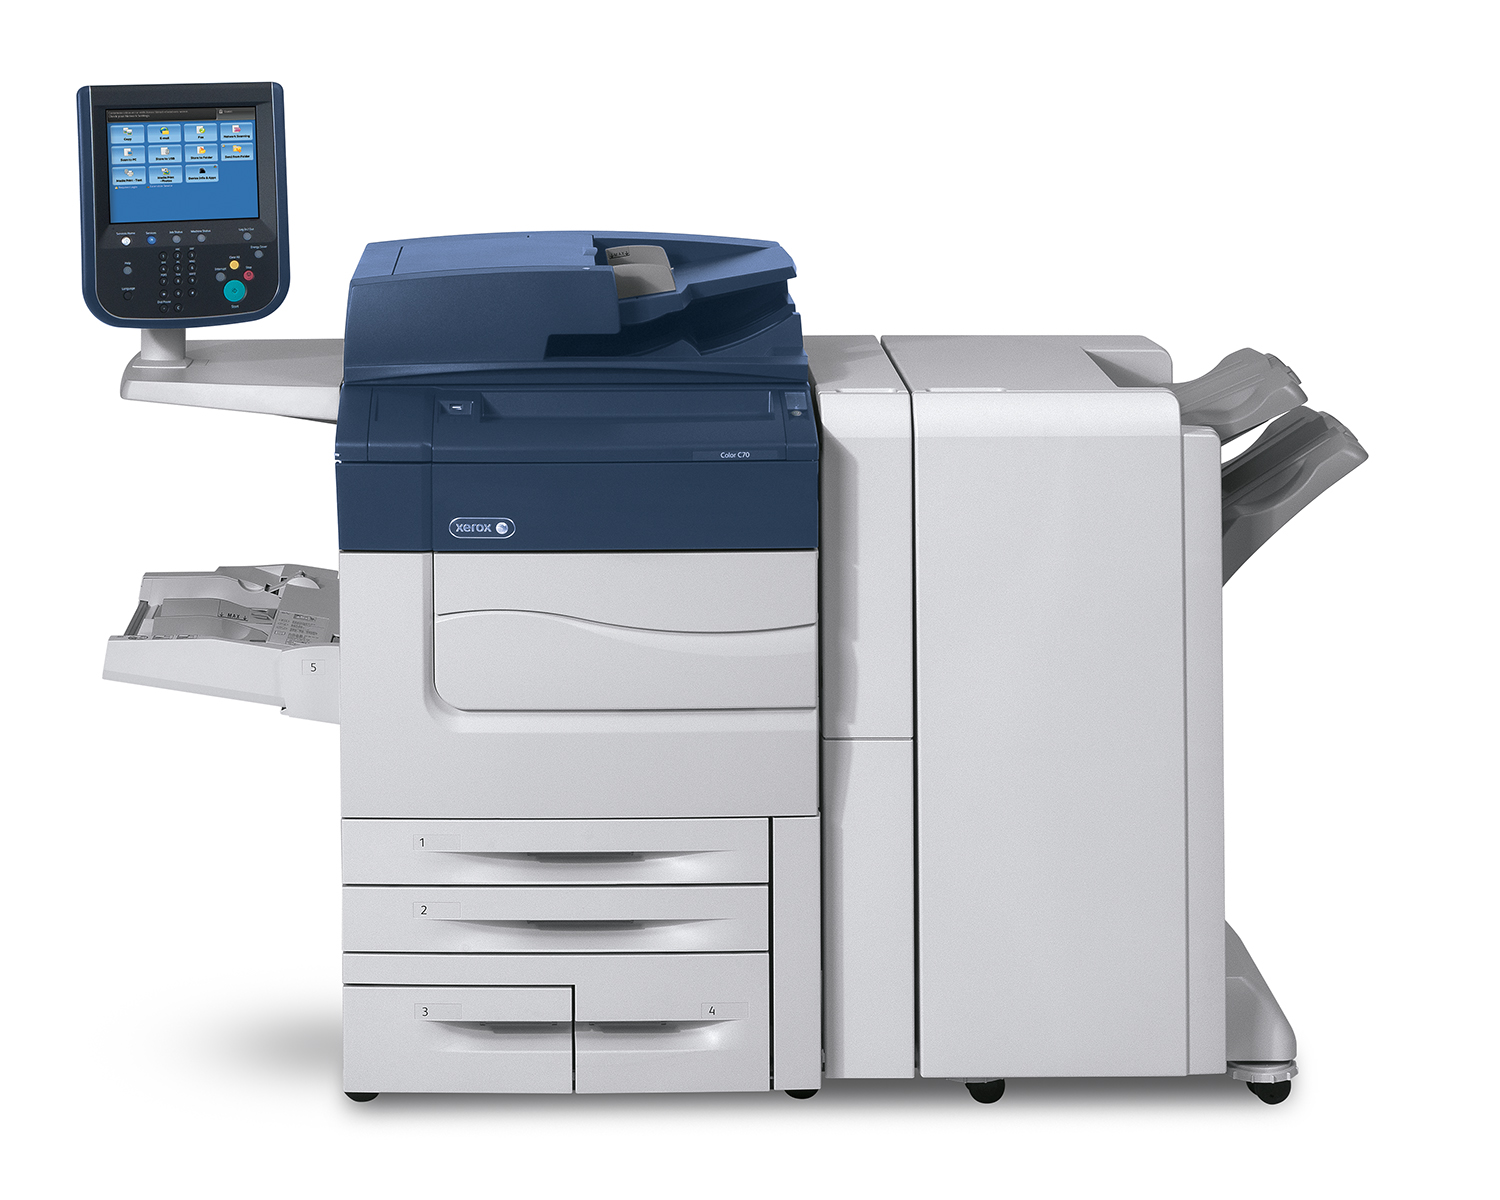 xerox 560 Color Copier 25.62177 -80.32477